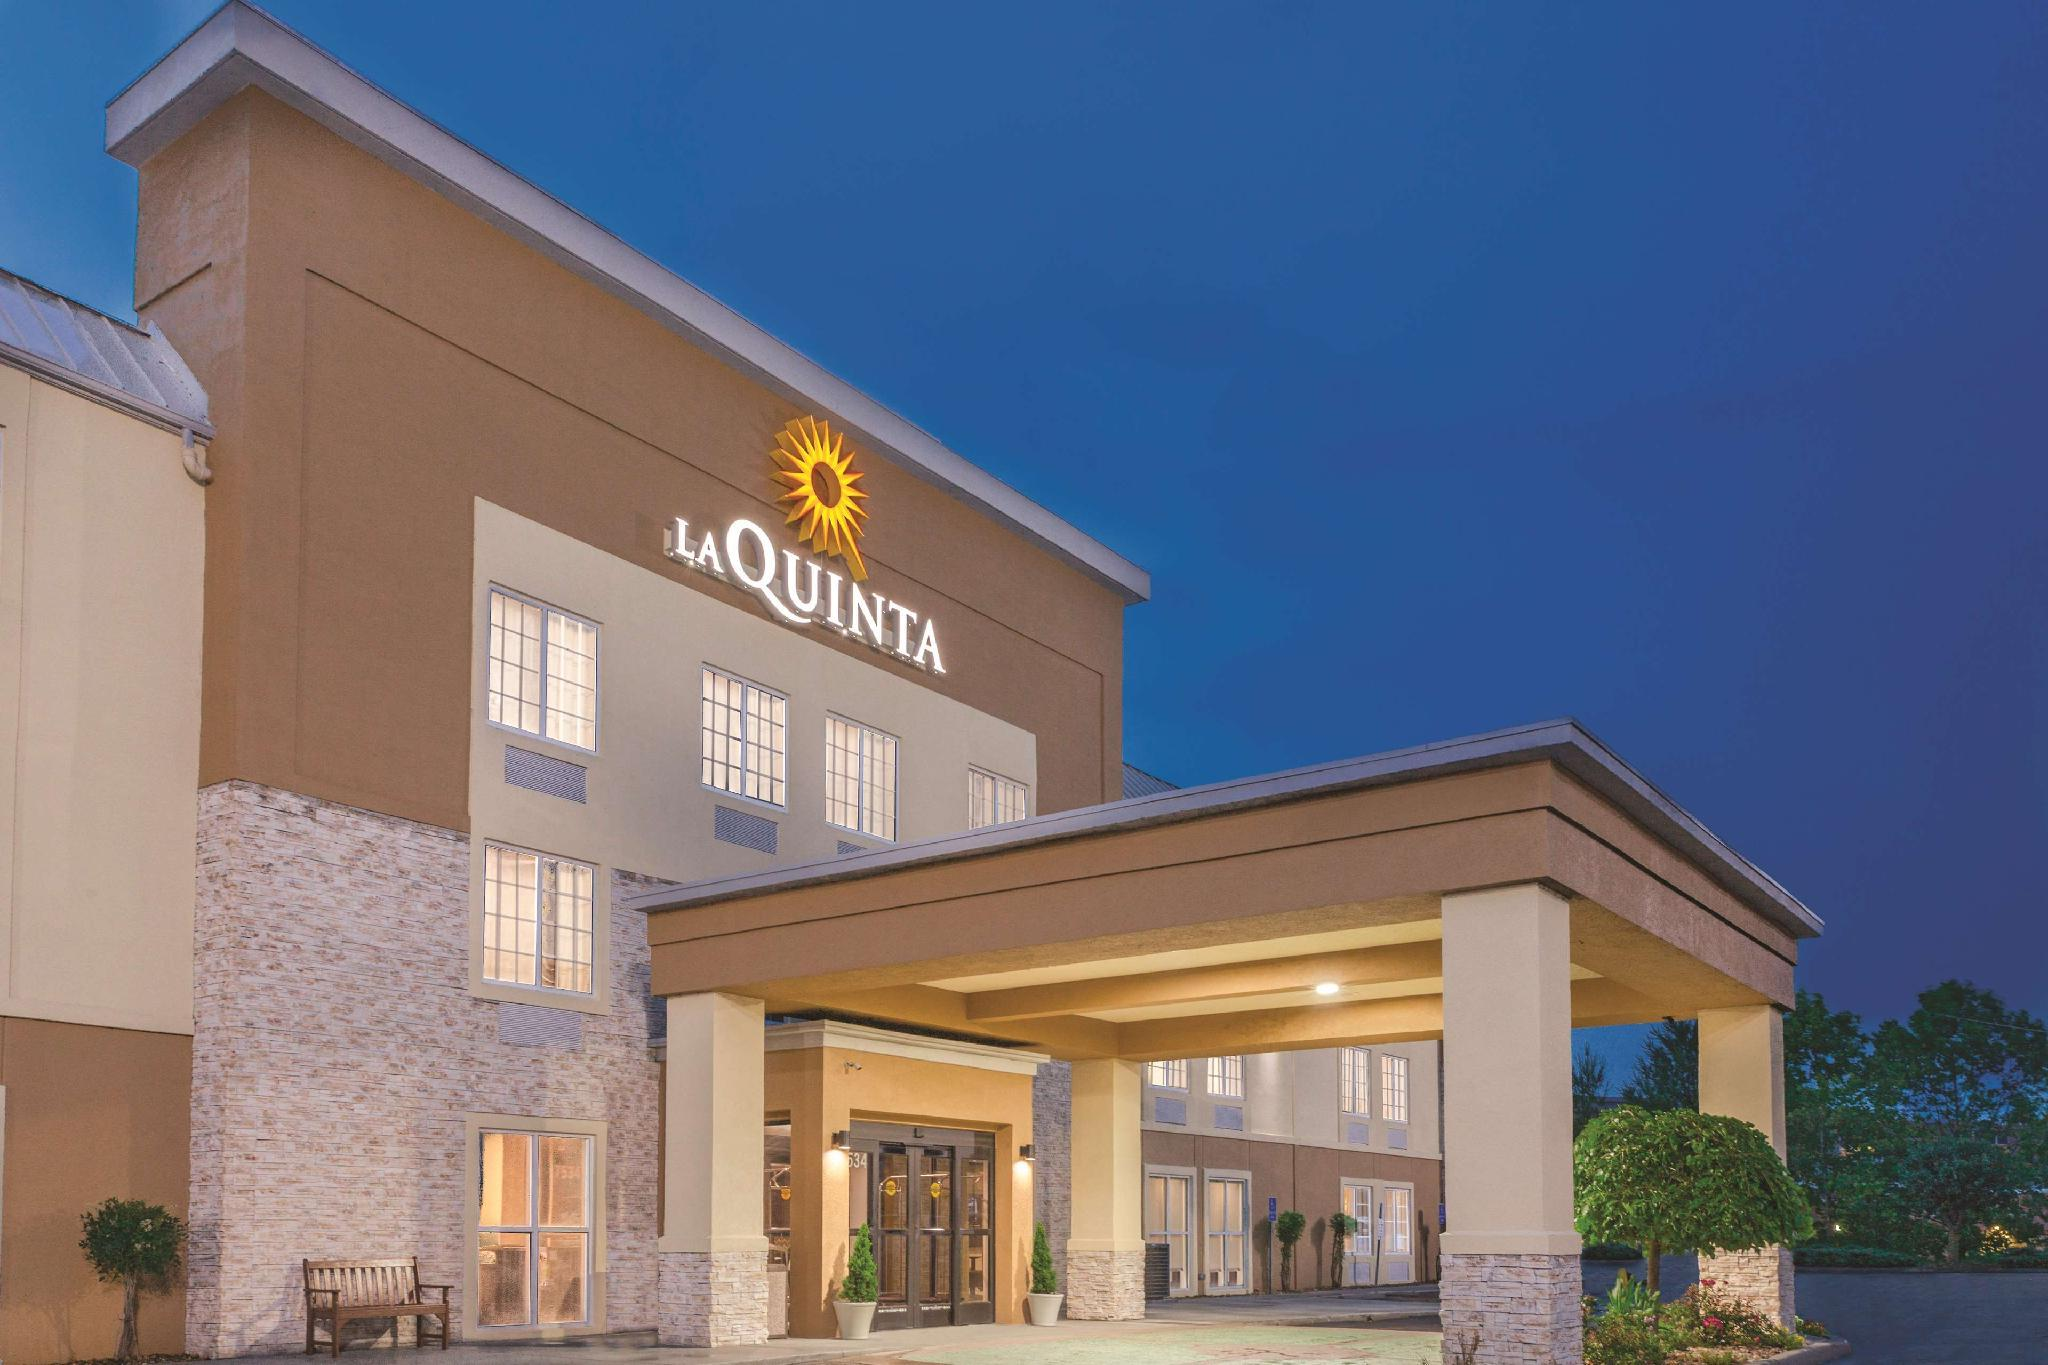 La Quinta Inn And Suites By Wyndham Knoxville North I 75